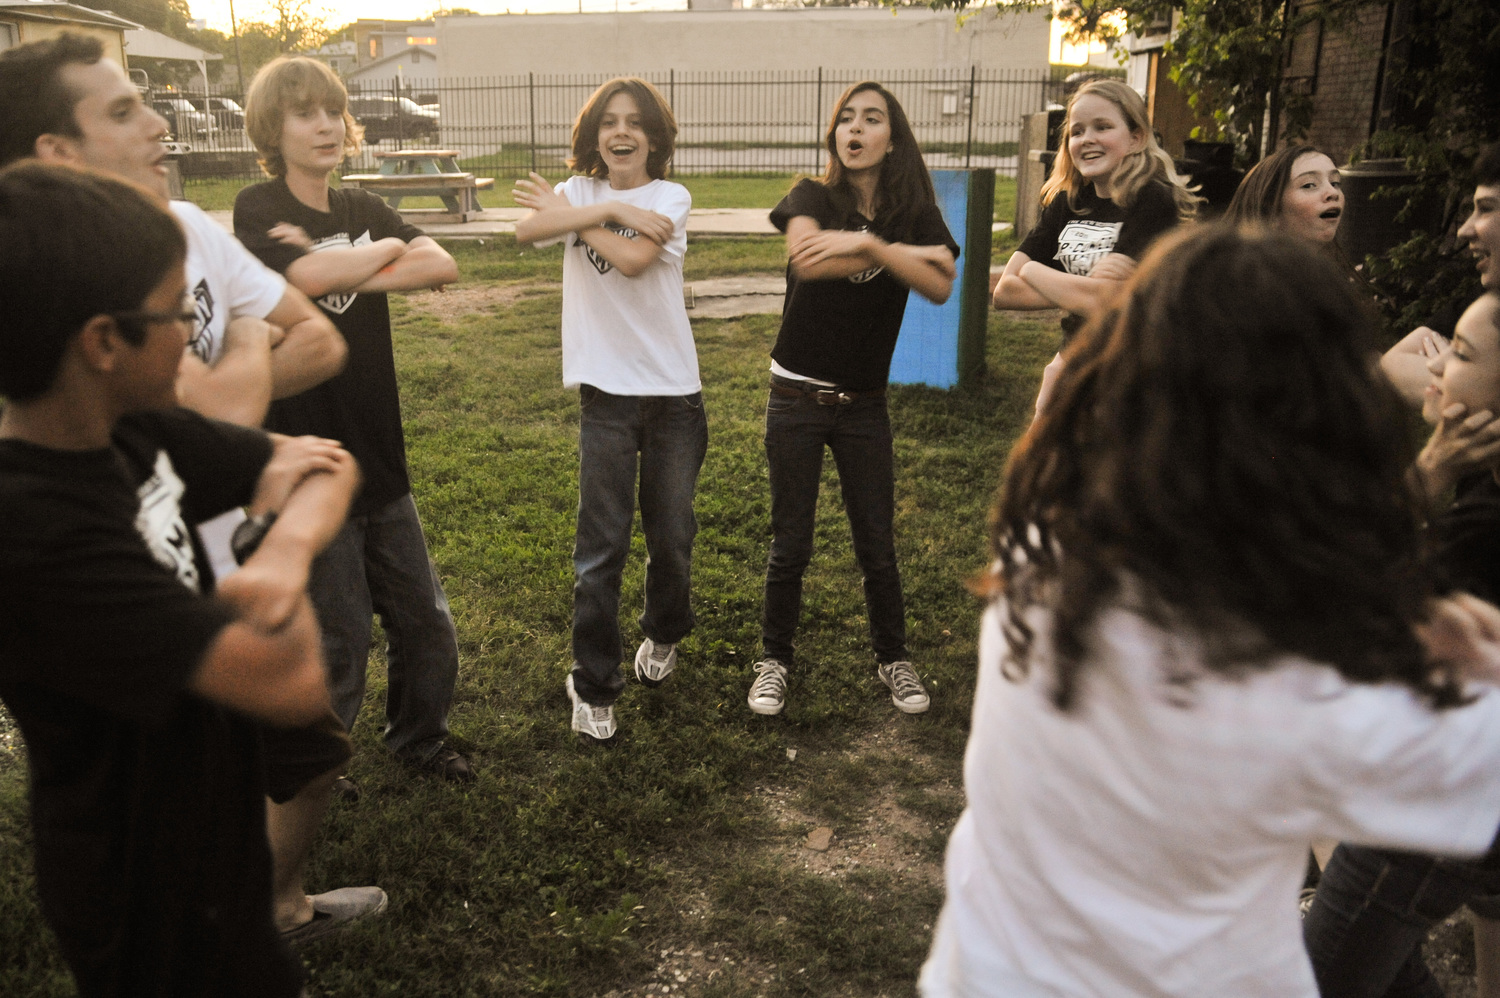 """get out of your head… - …and in touch with your heart"" a famous improv saying goes. Getting students physically outside of a classroom went a long way in helping this team bond."